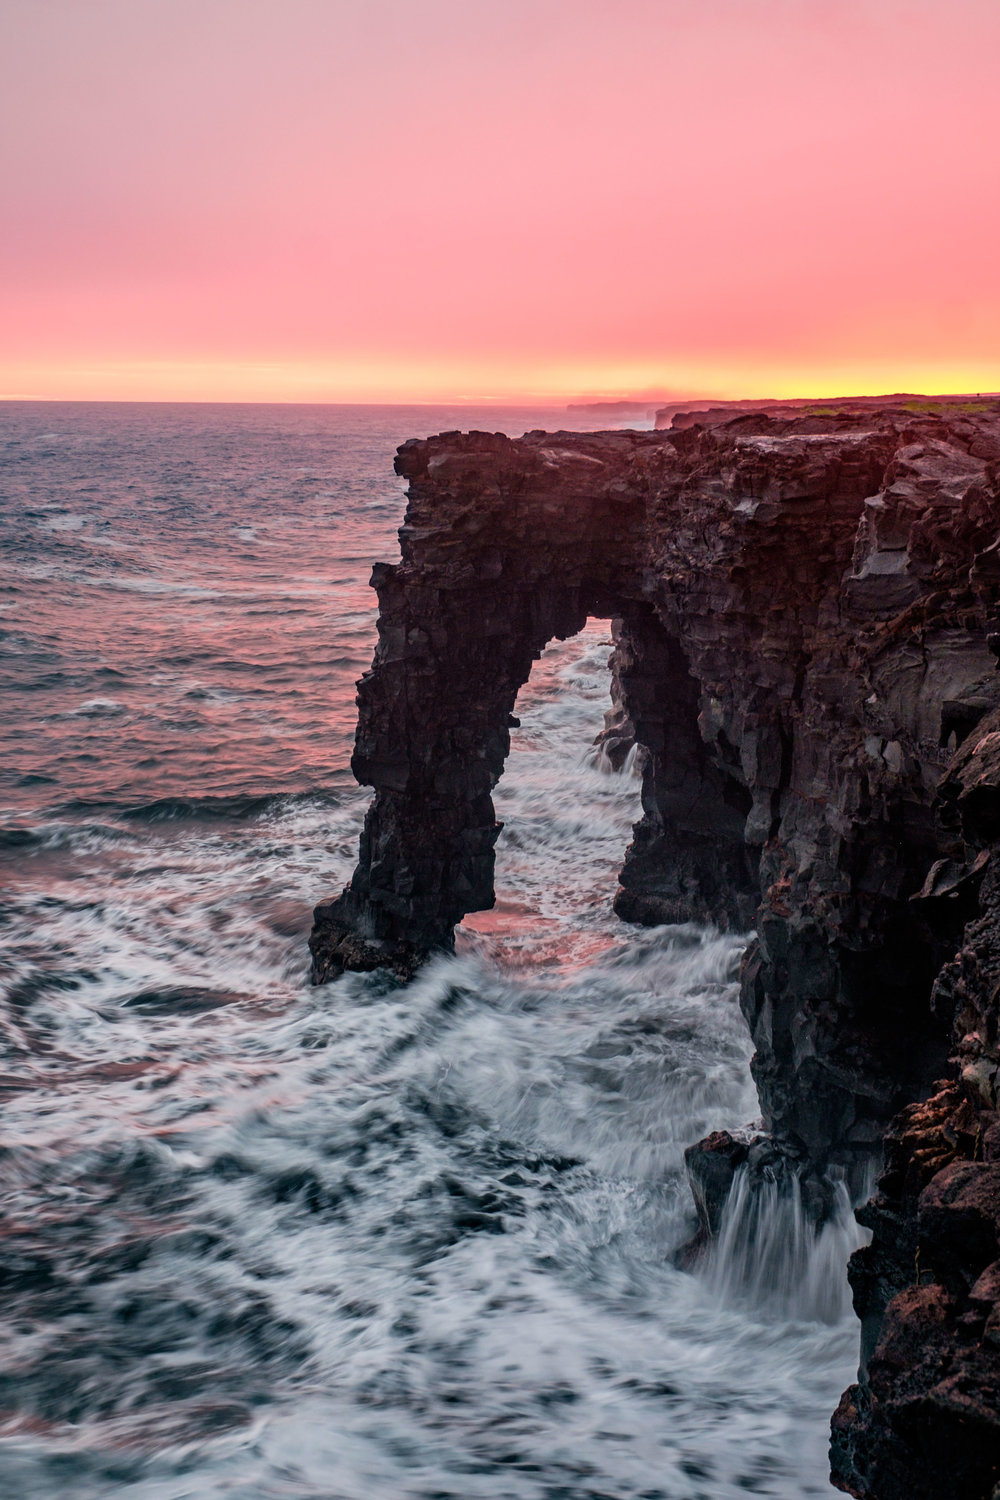 The Holei Sea Arch, photographed during an incredible pink sunset that turned the world an amazing shade of pink.